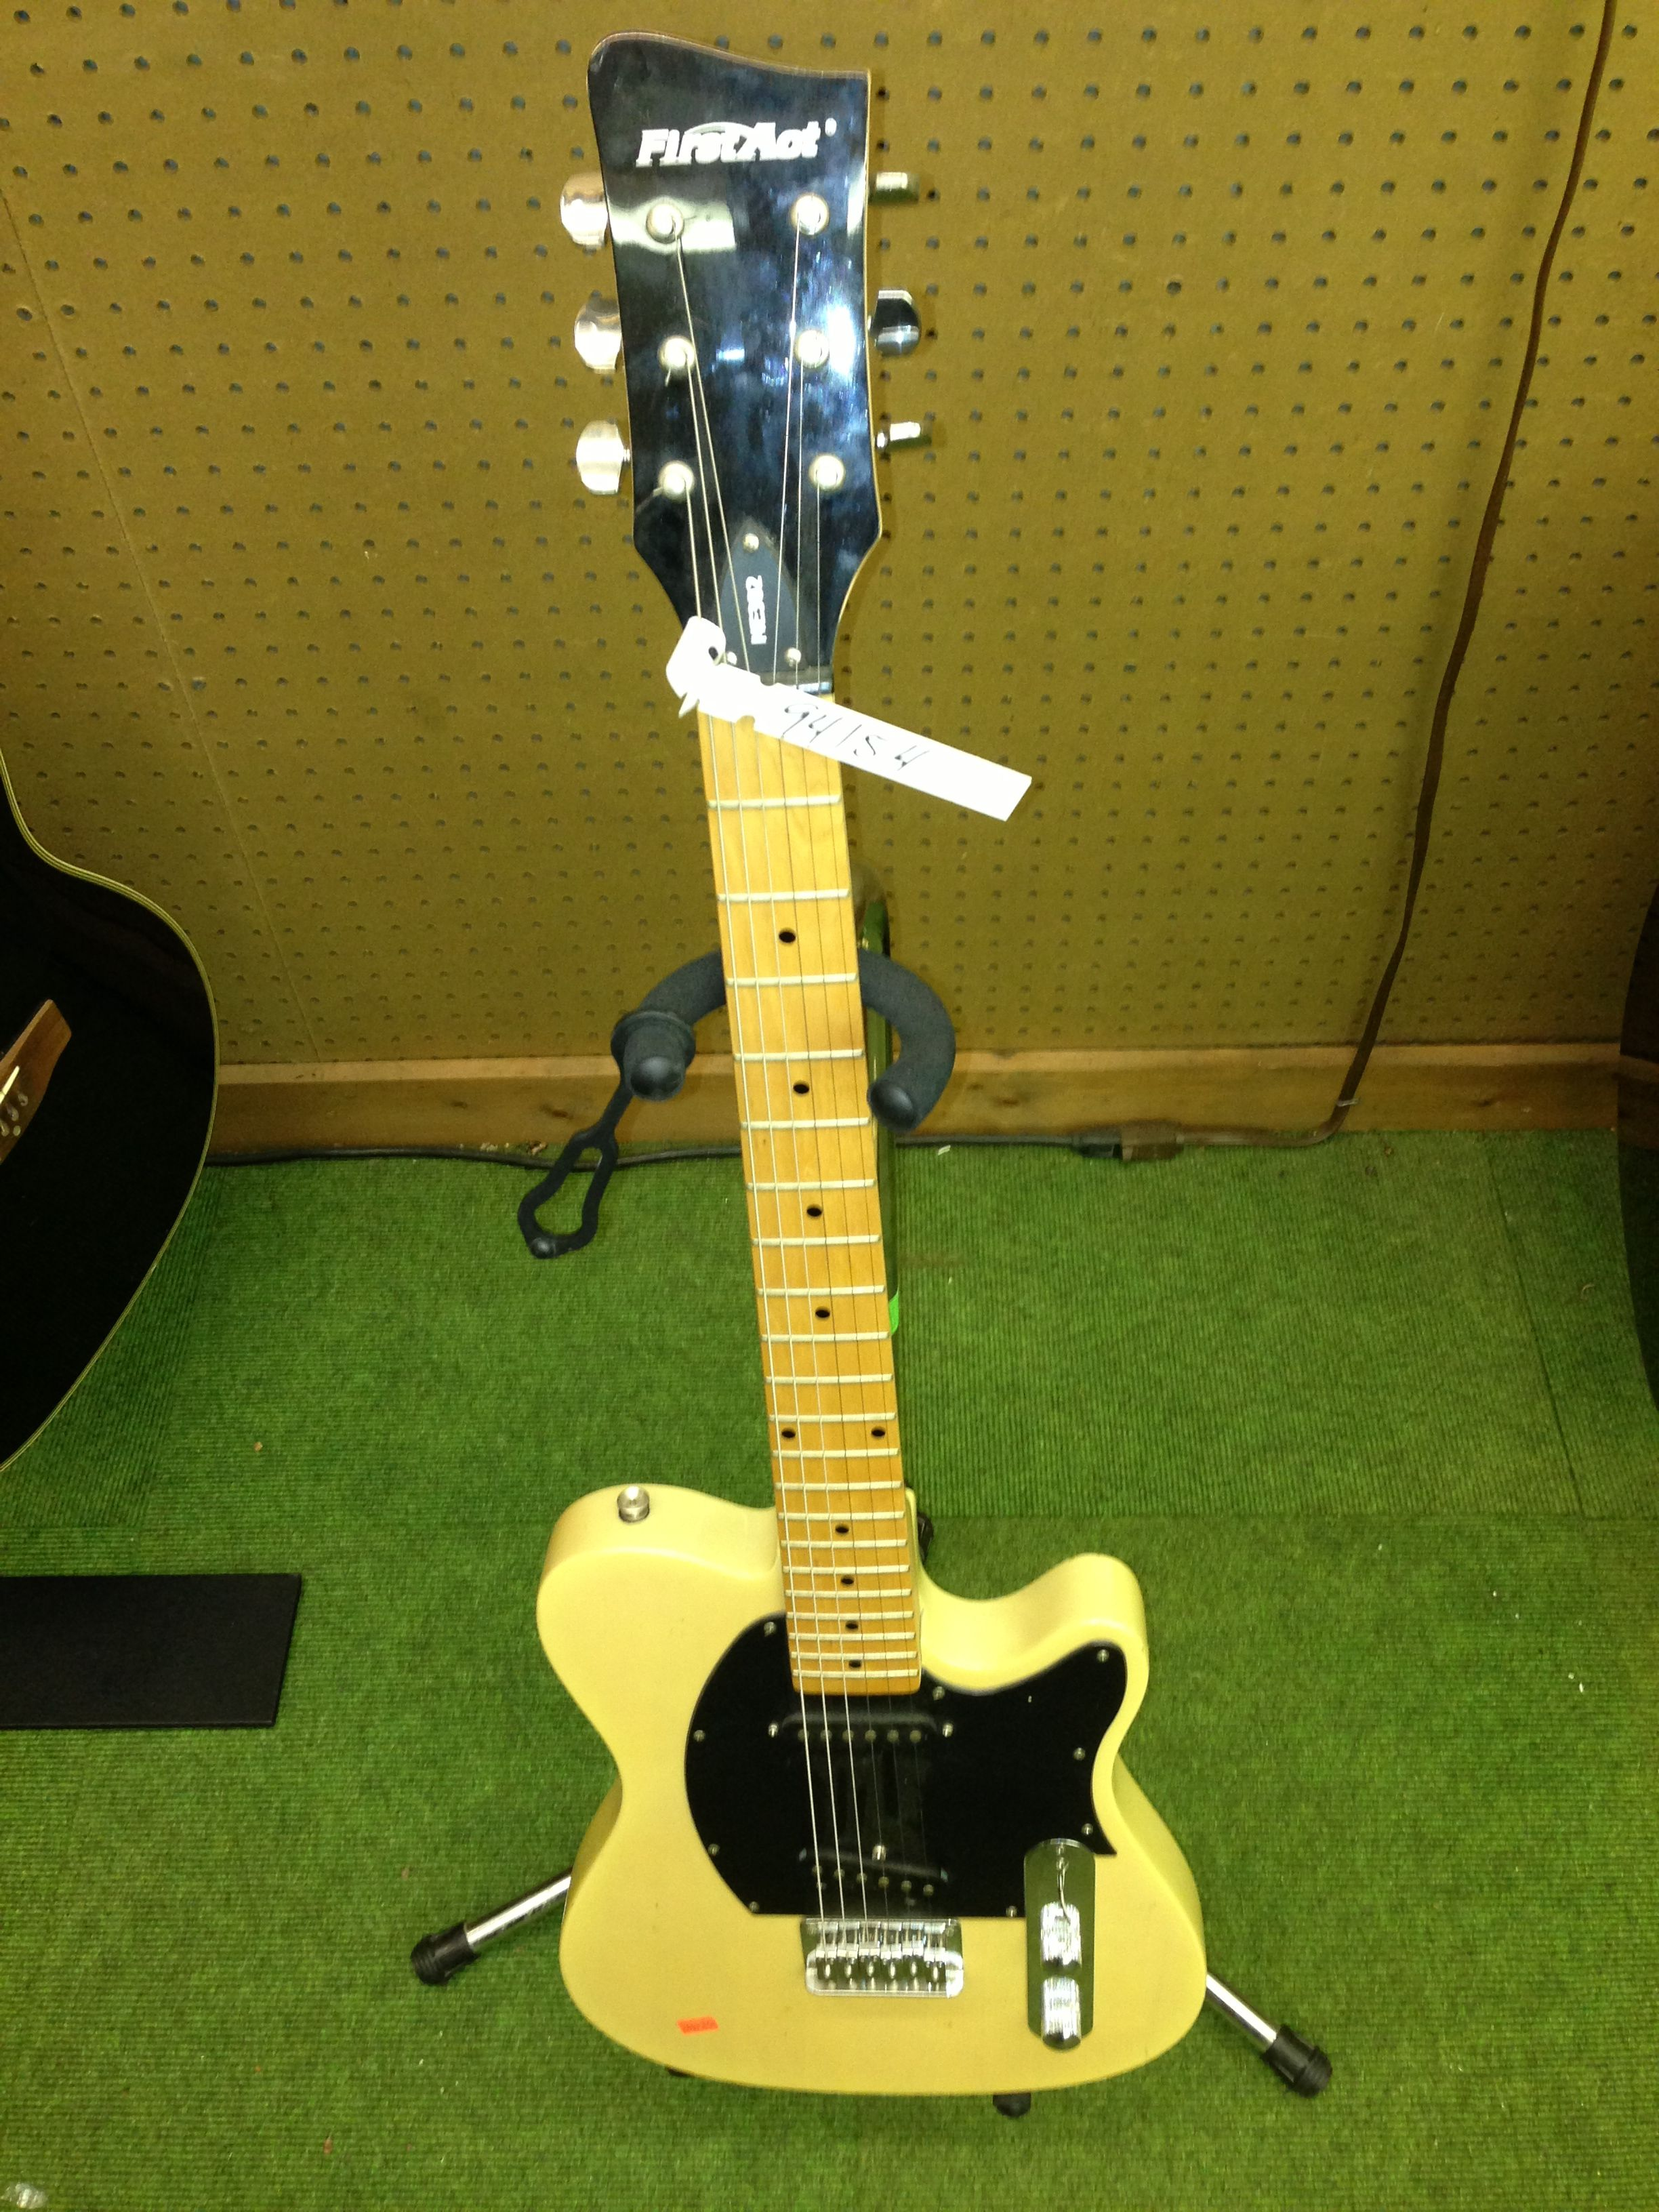 hight resolution of  69 95 first act model me302 electric guitar musical instruments first act guitar wiring diagram